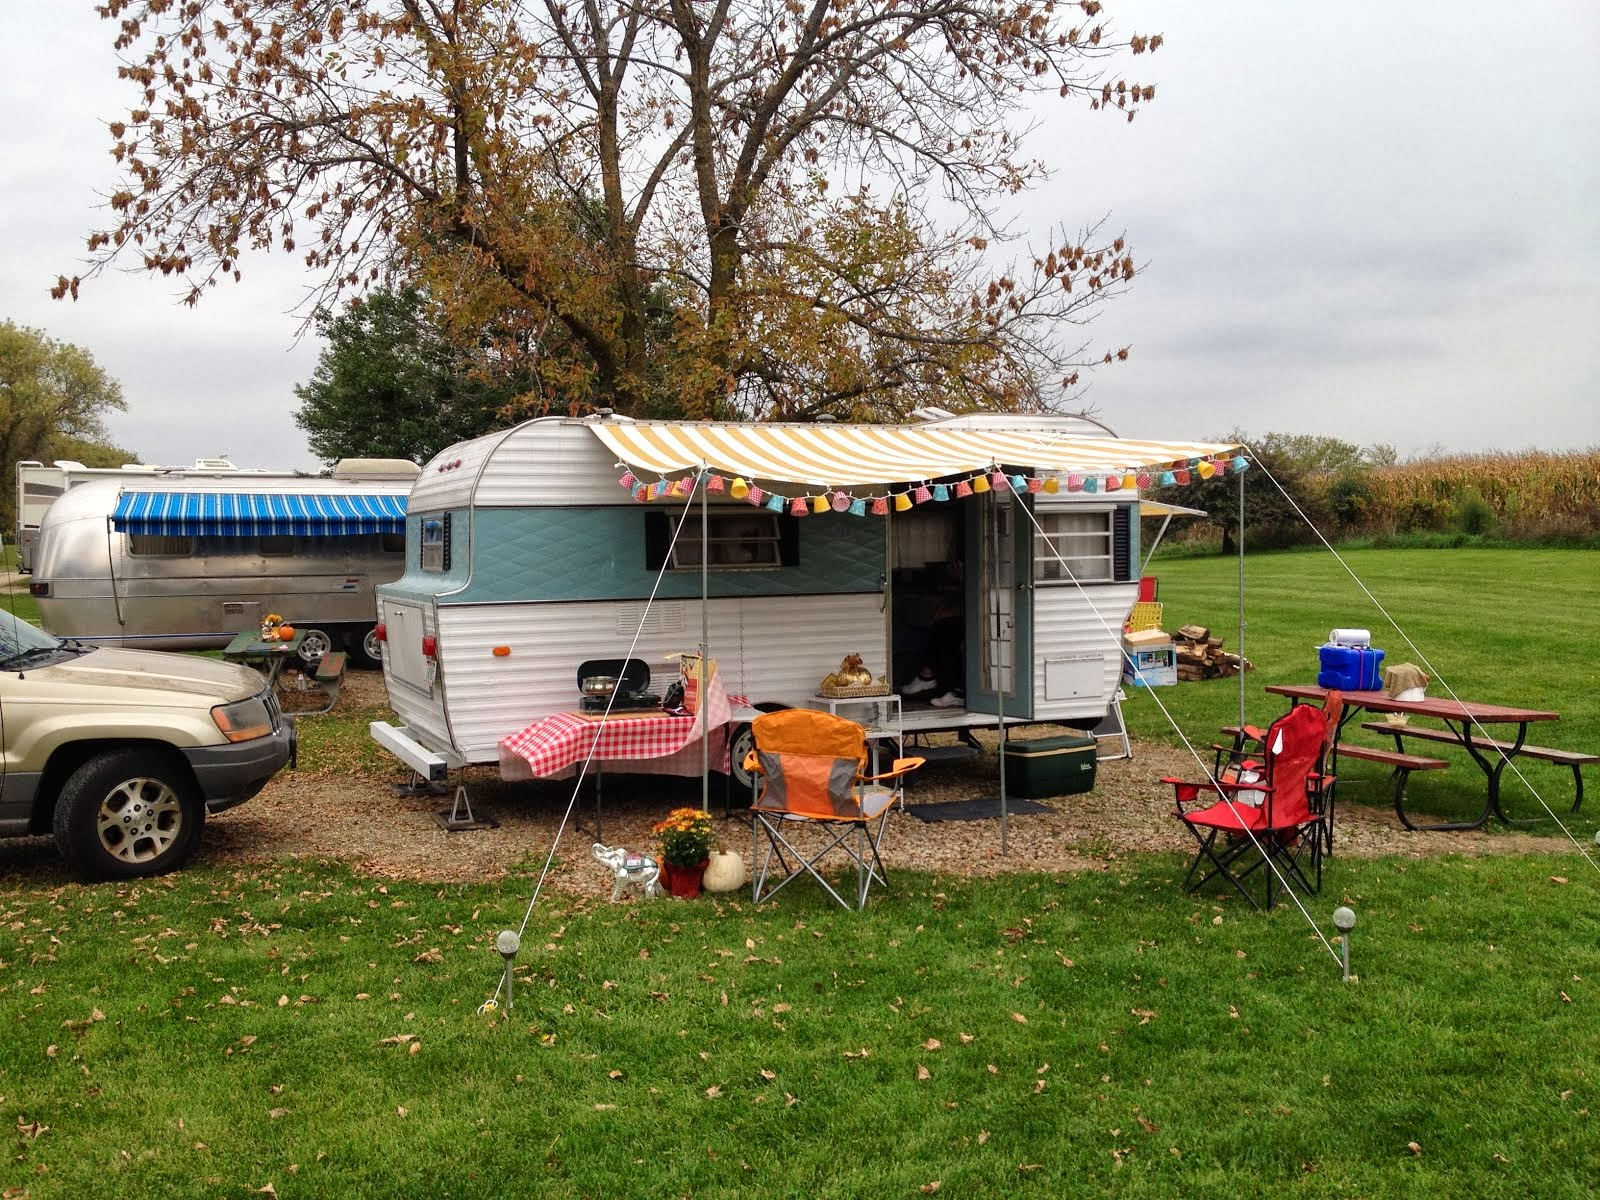 2014 VOLO VINTAGE TRAILER RALLY, OCTOBER 2, 3, 4 & 5, 2014